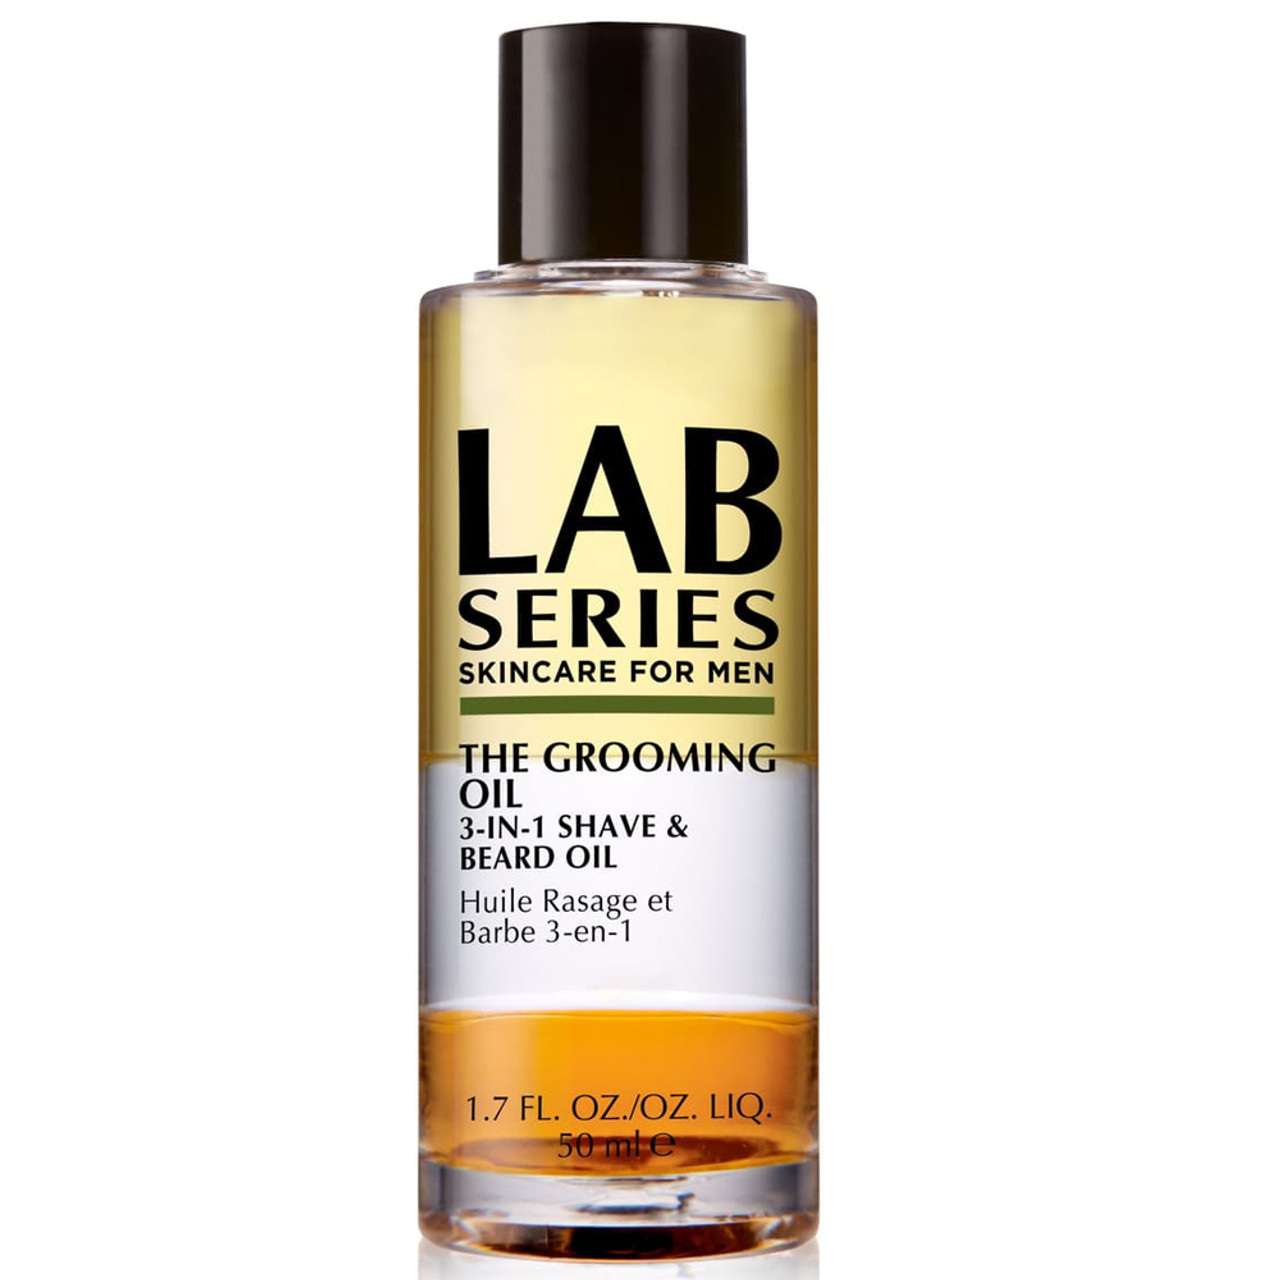 Lab Series The Grooming Oil 3-In-1 Shave & Beard Oil